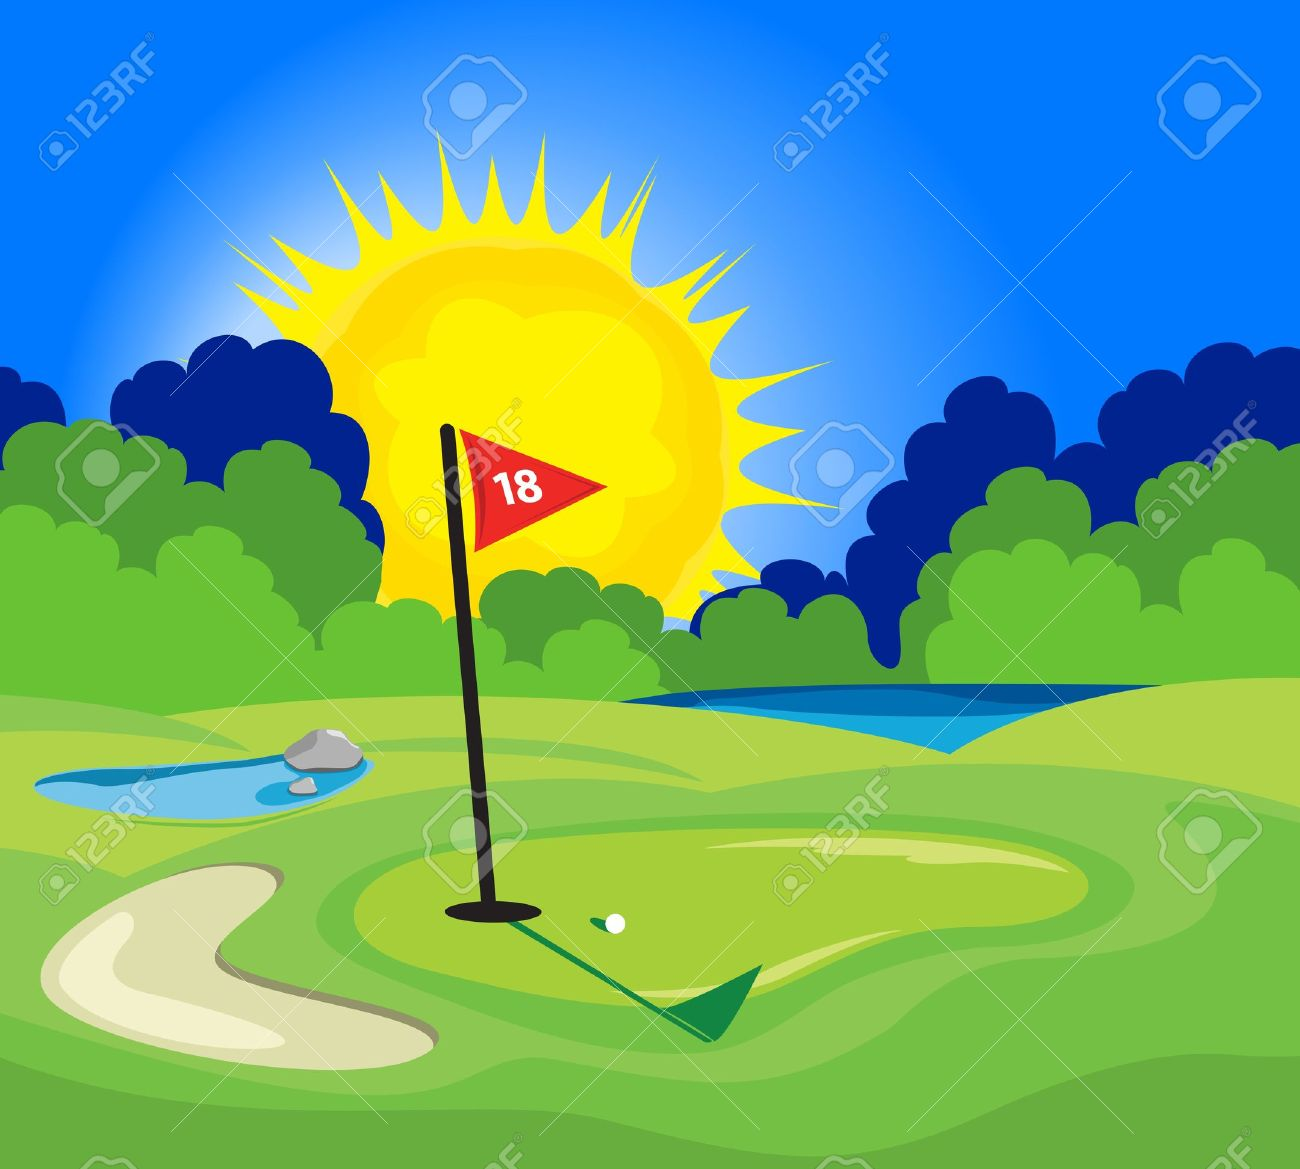 an illustration of the 18th hole on a golf course royalty free rh 123rf com golf club clipart black and white golf club clipart free